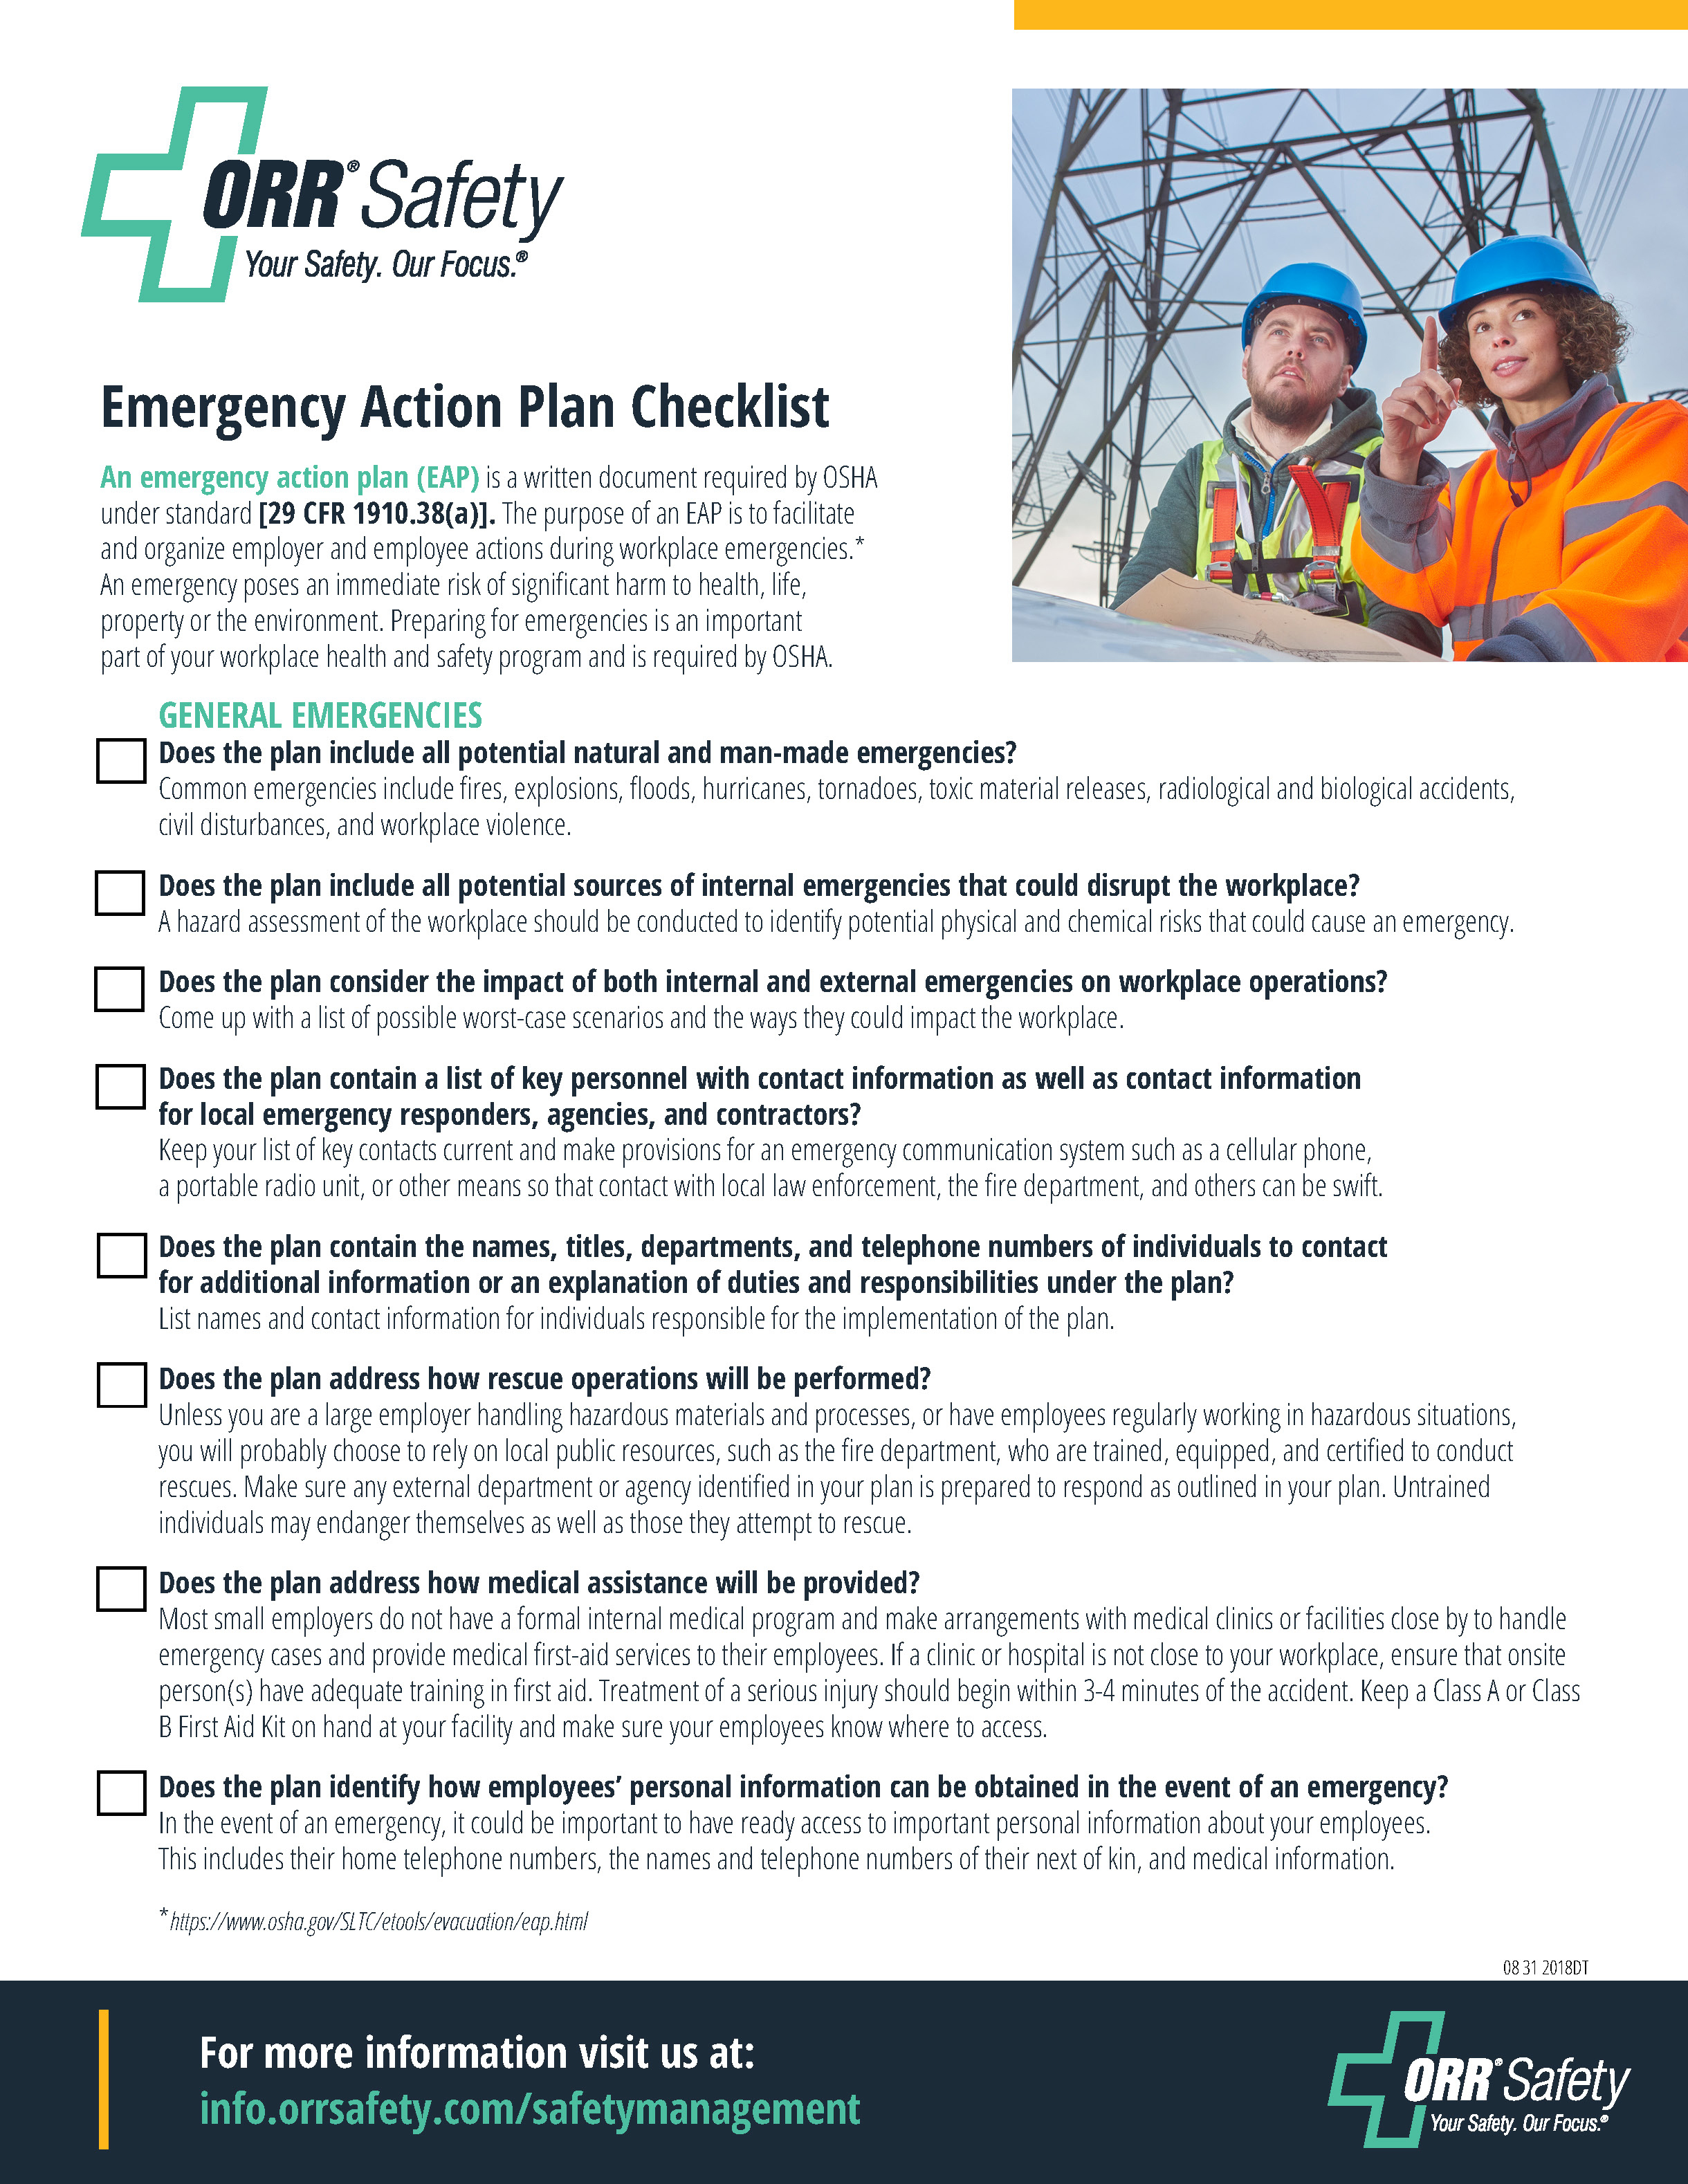 OSC_Emergency-Action-Plan-Checklist_10-23-2018_Page_1-web